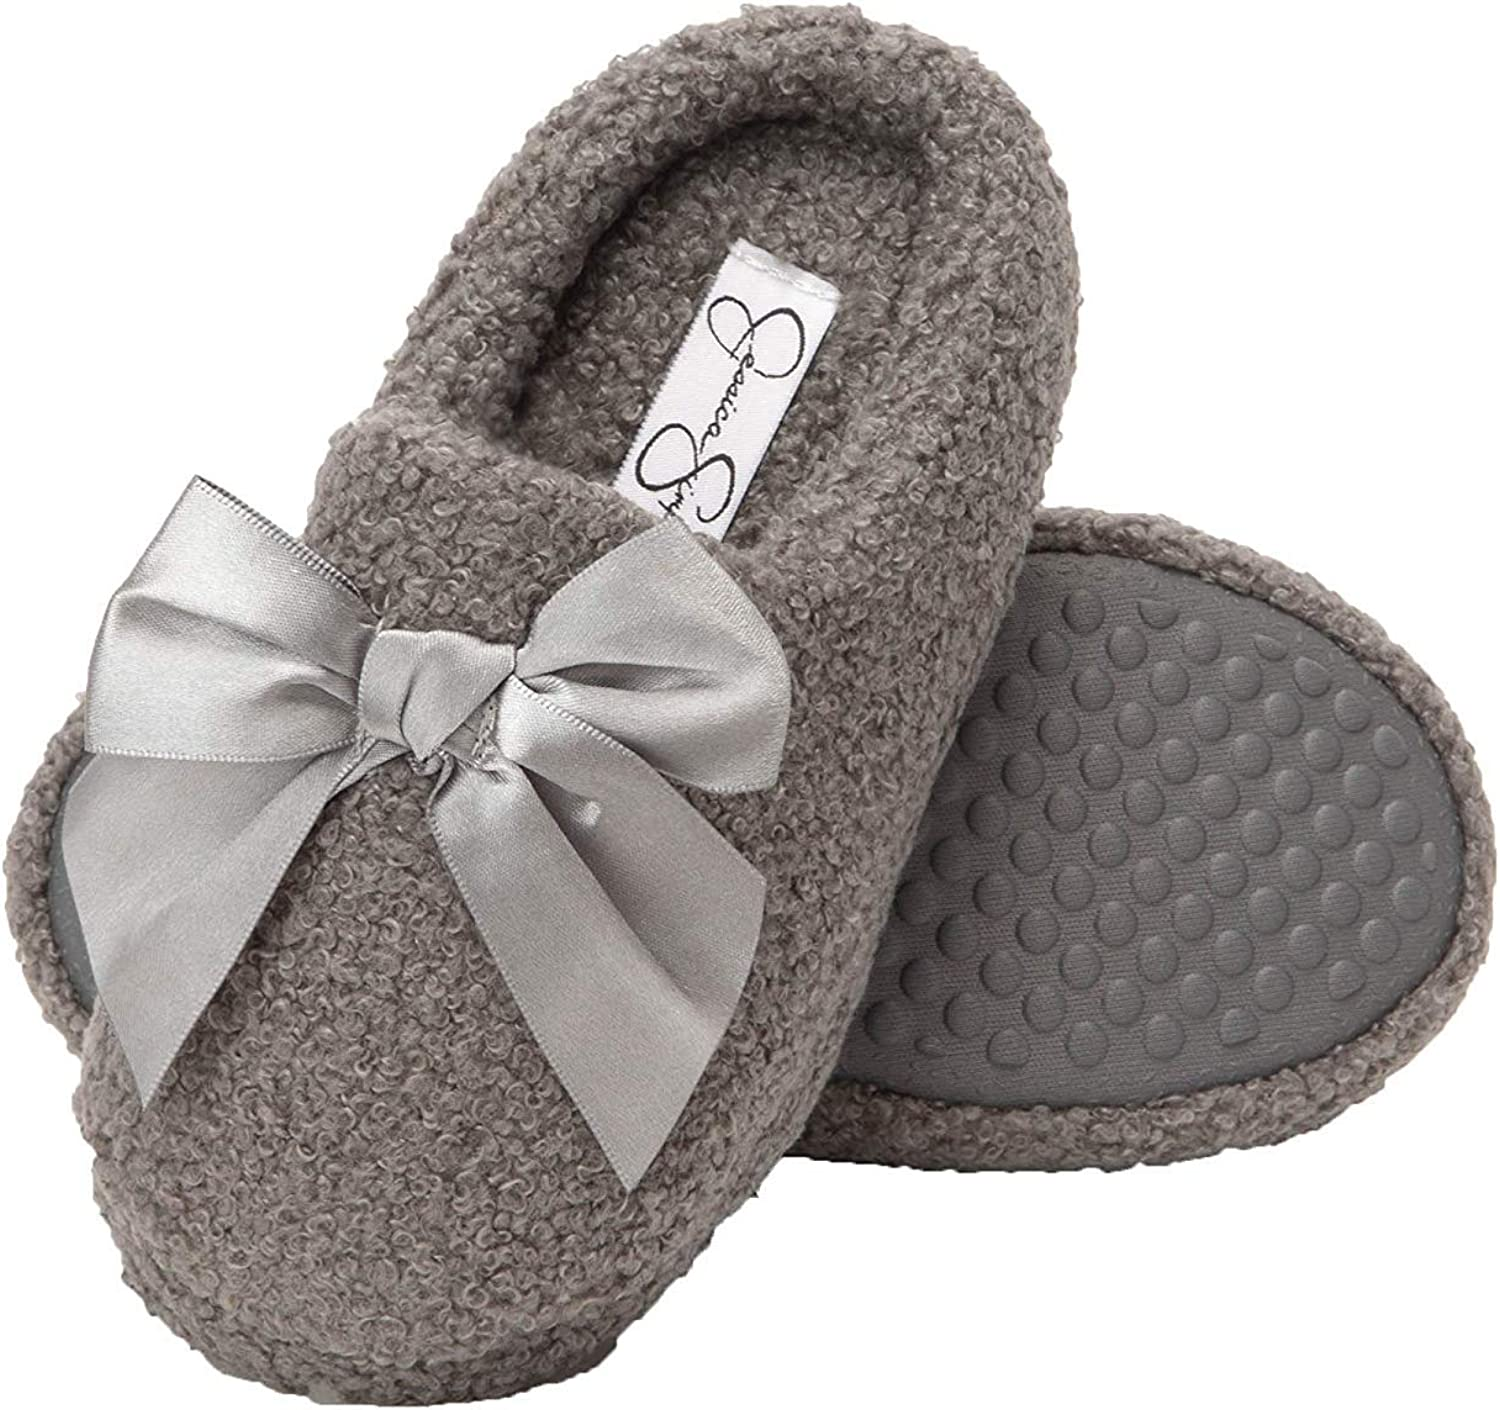 Jessica Simpson Girls Slip-On Clogs Fuzzy Comfy Warm Memory Foam Sherpa Slippers with Satin Bow